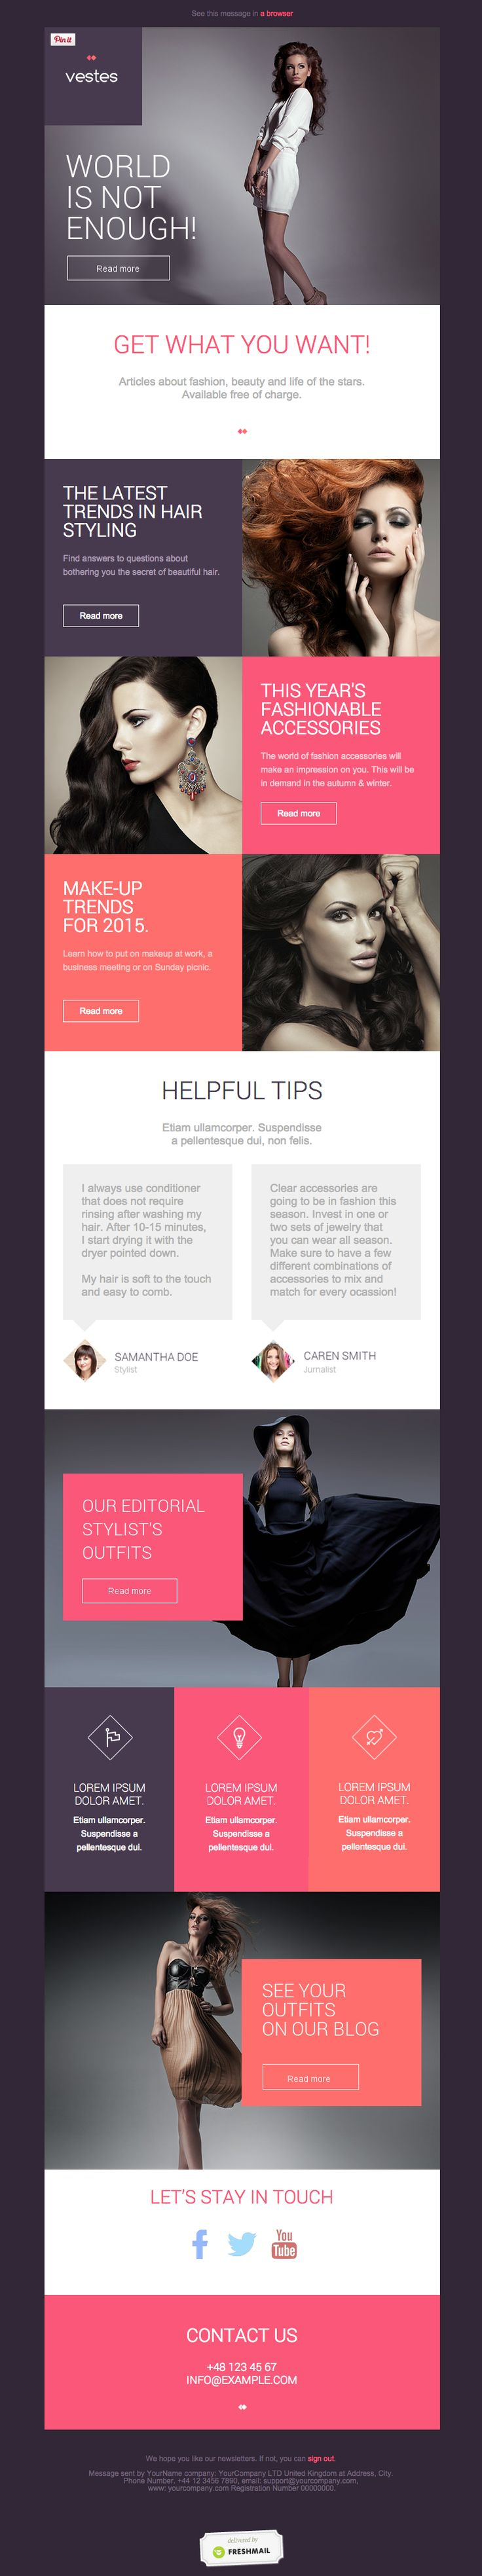 nice looking fashion responsive email newsletter templates #pink #photography #gray